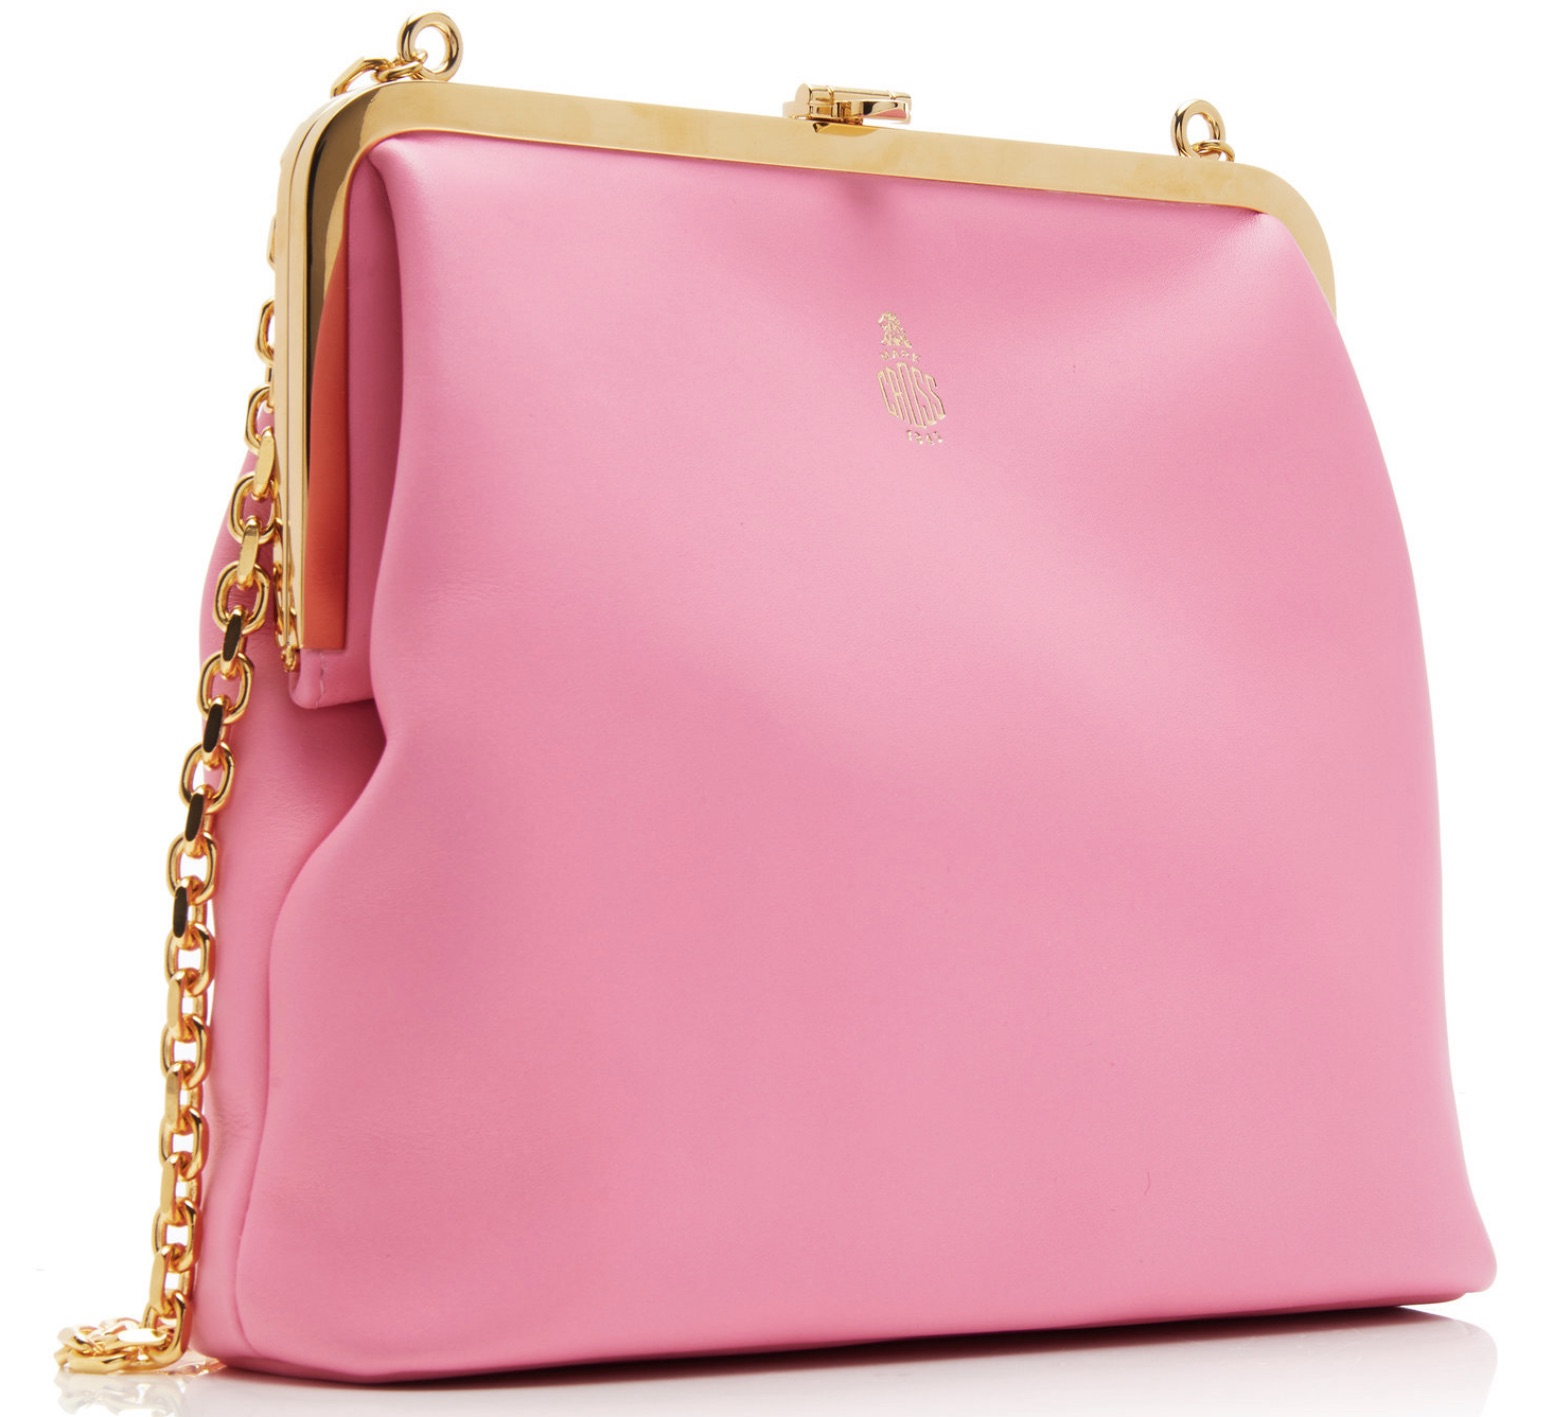 The Pink Mark Cross Susanna Leather Shoulder Bag Must Have